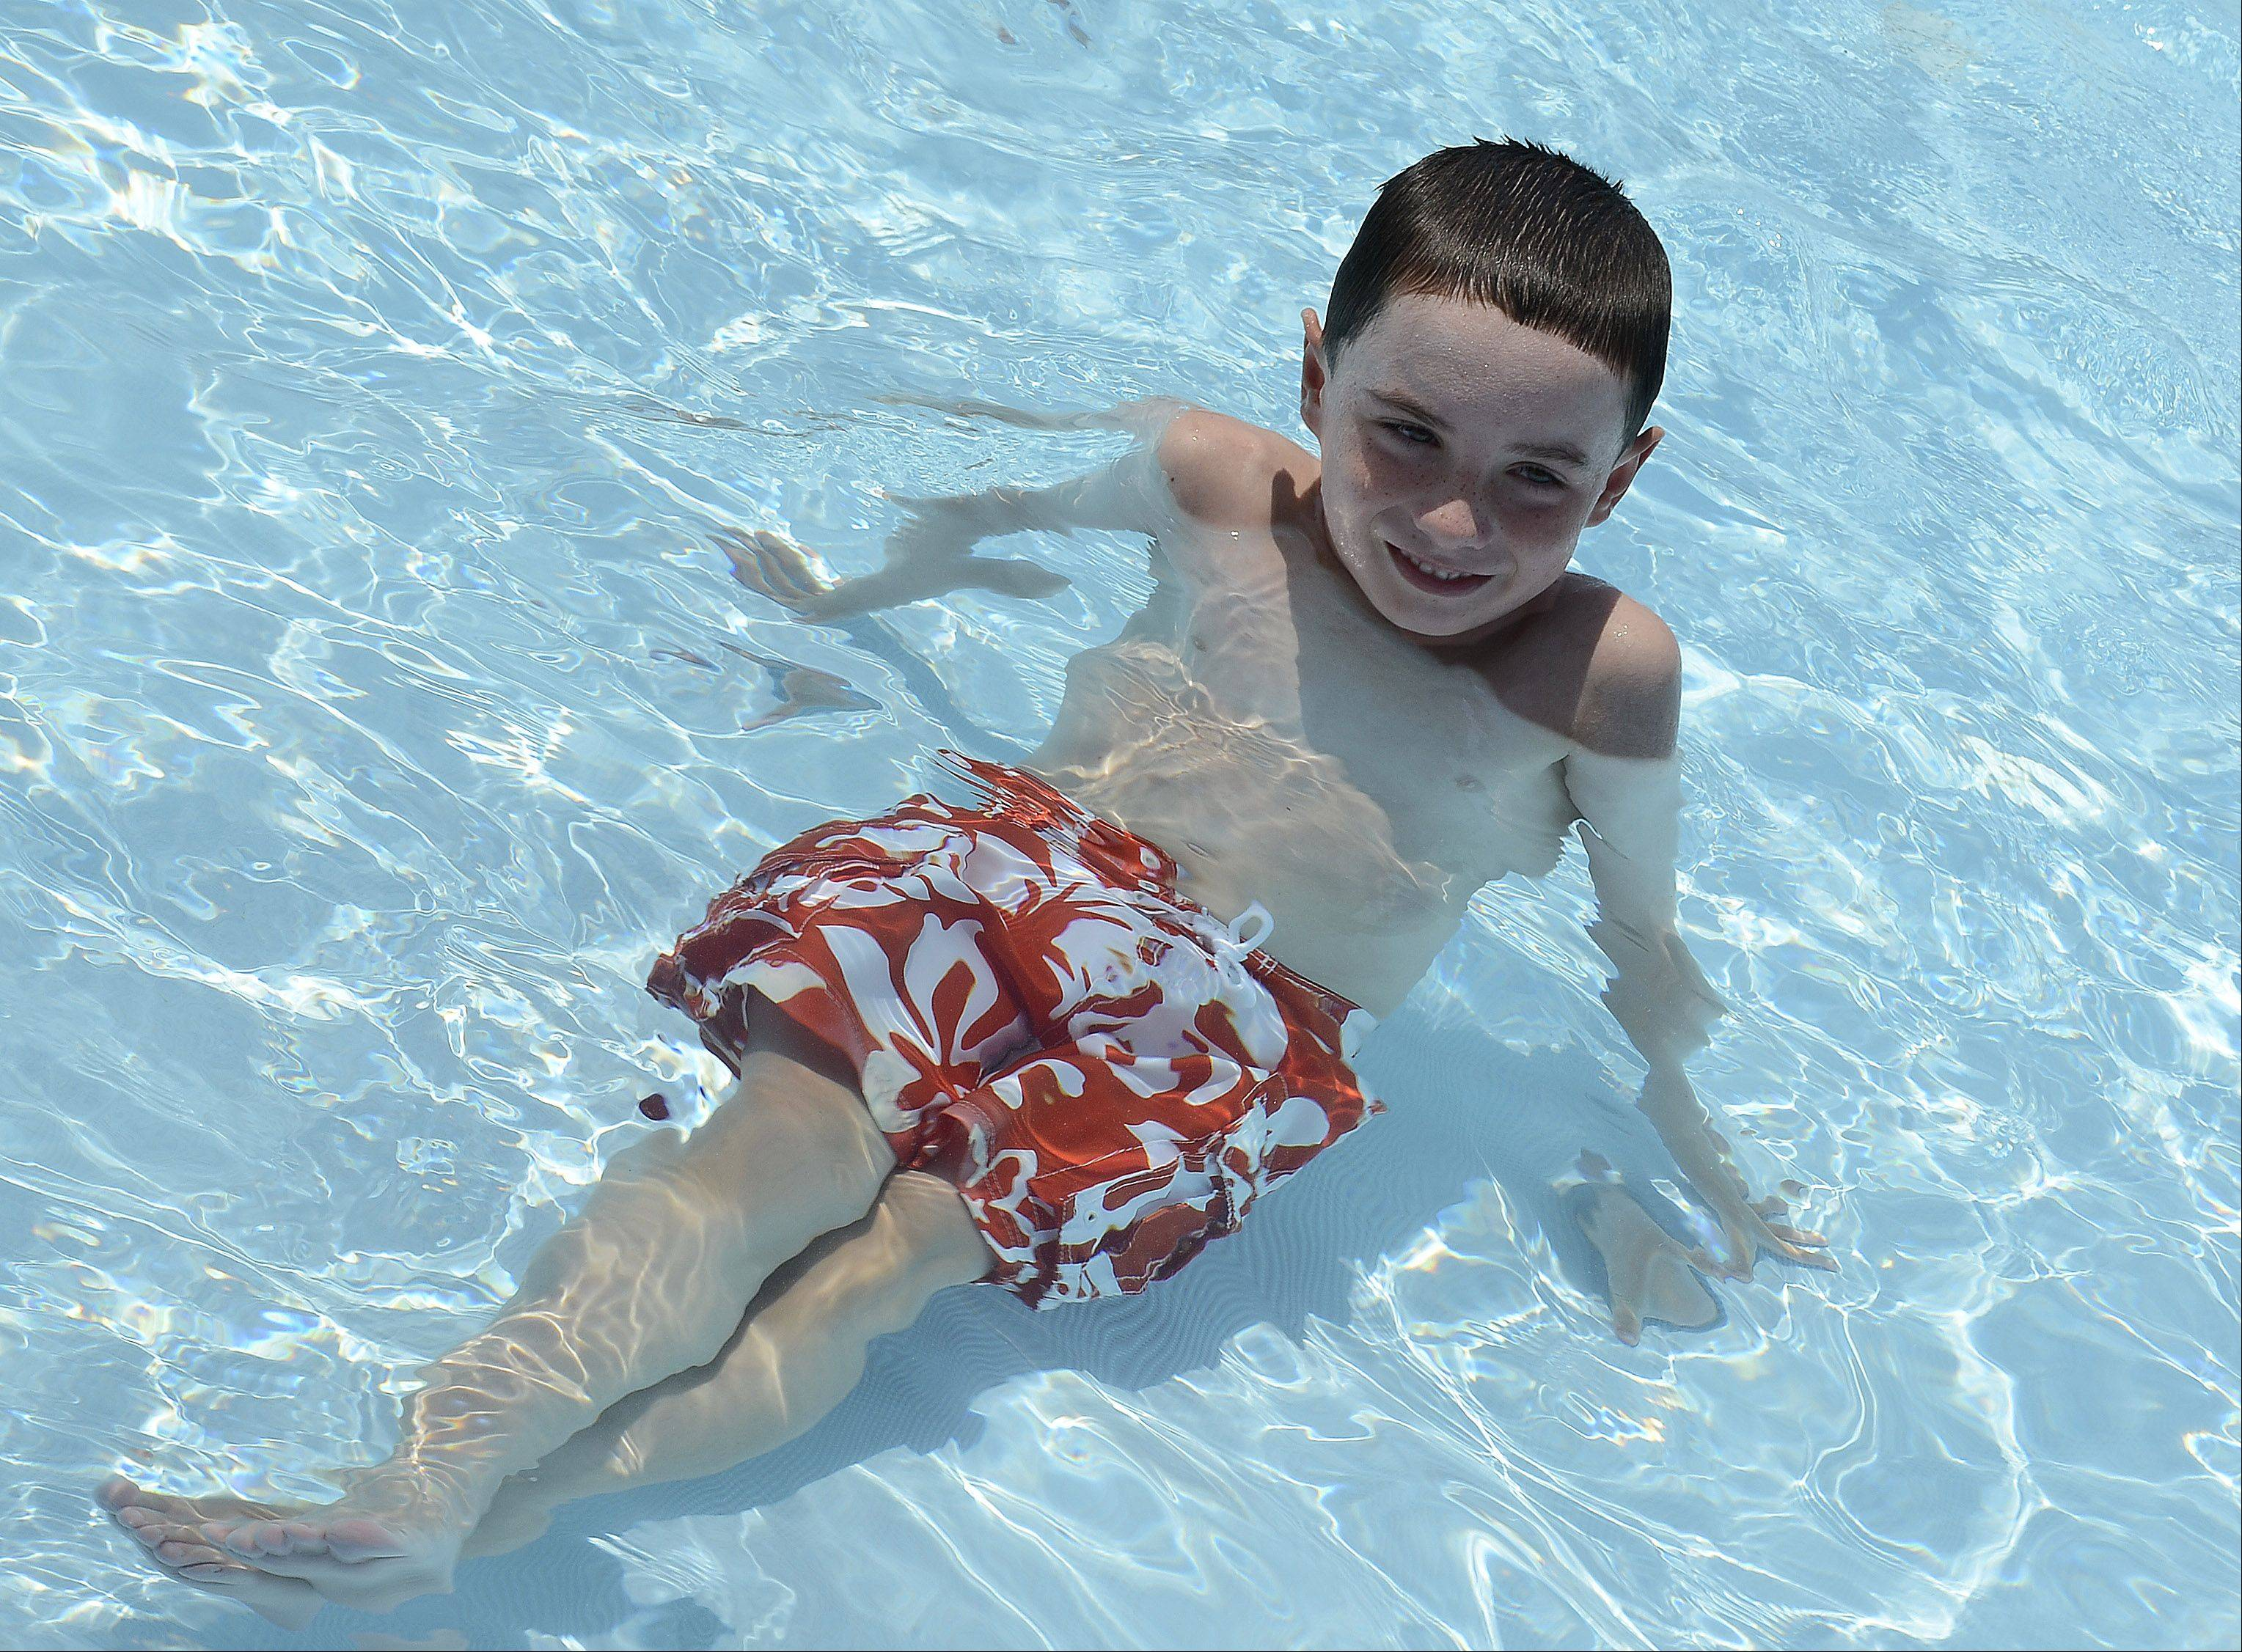 Sean Manning, 8, of Arlington Heights kicks back and cools off at the Meadows Park Aquatic Center in Mount Prospect.